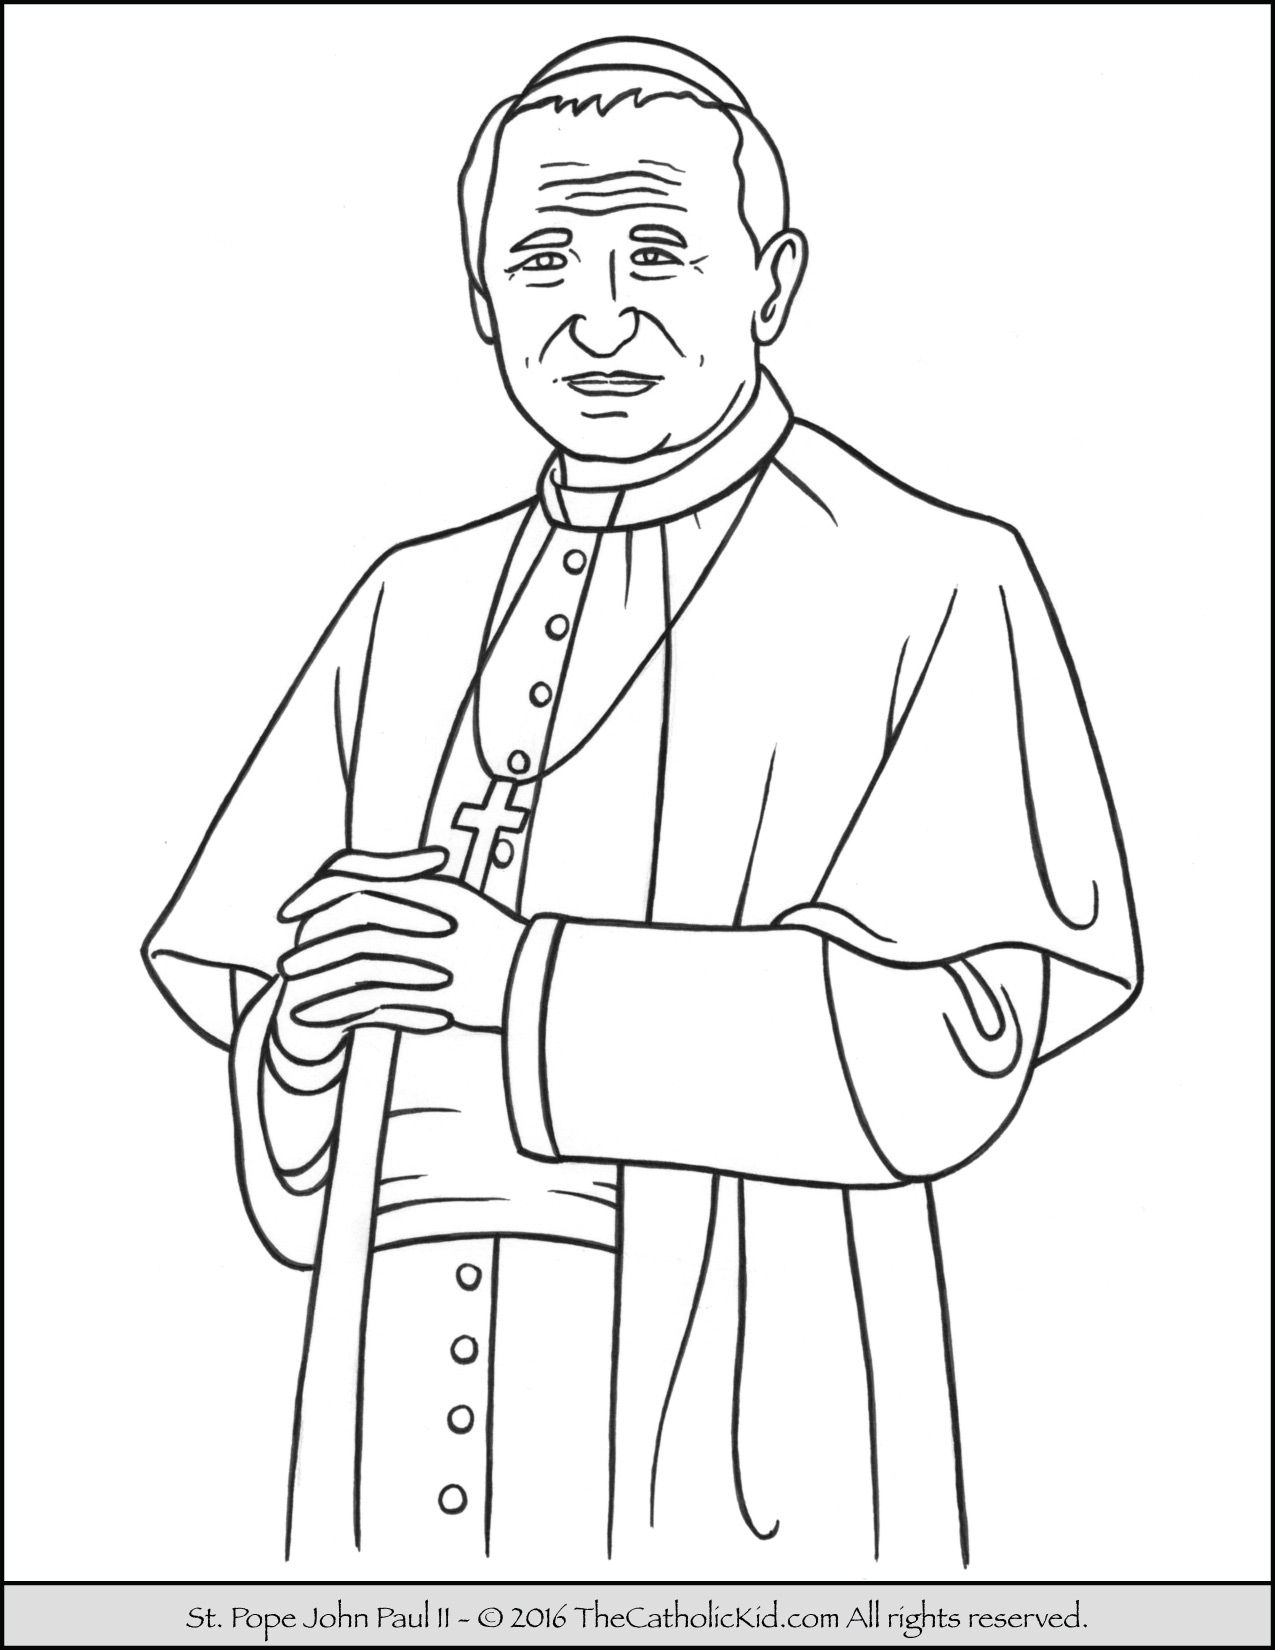 25 Saint Coloring Pages Compilation | FREE COLORING PAGES - Part 2